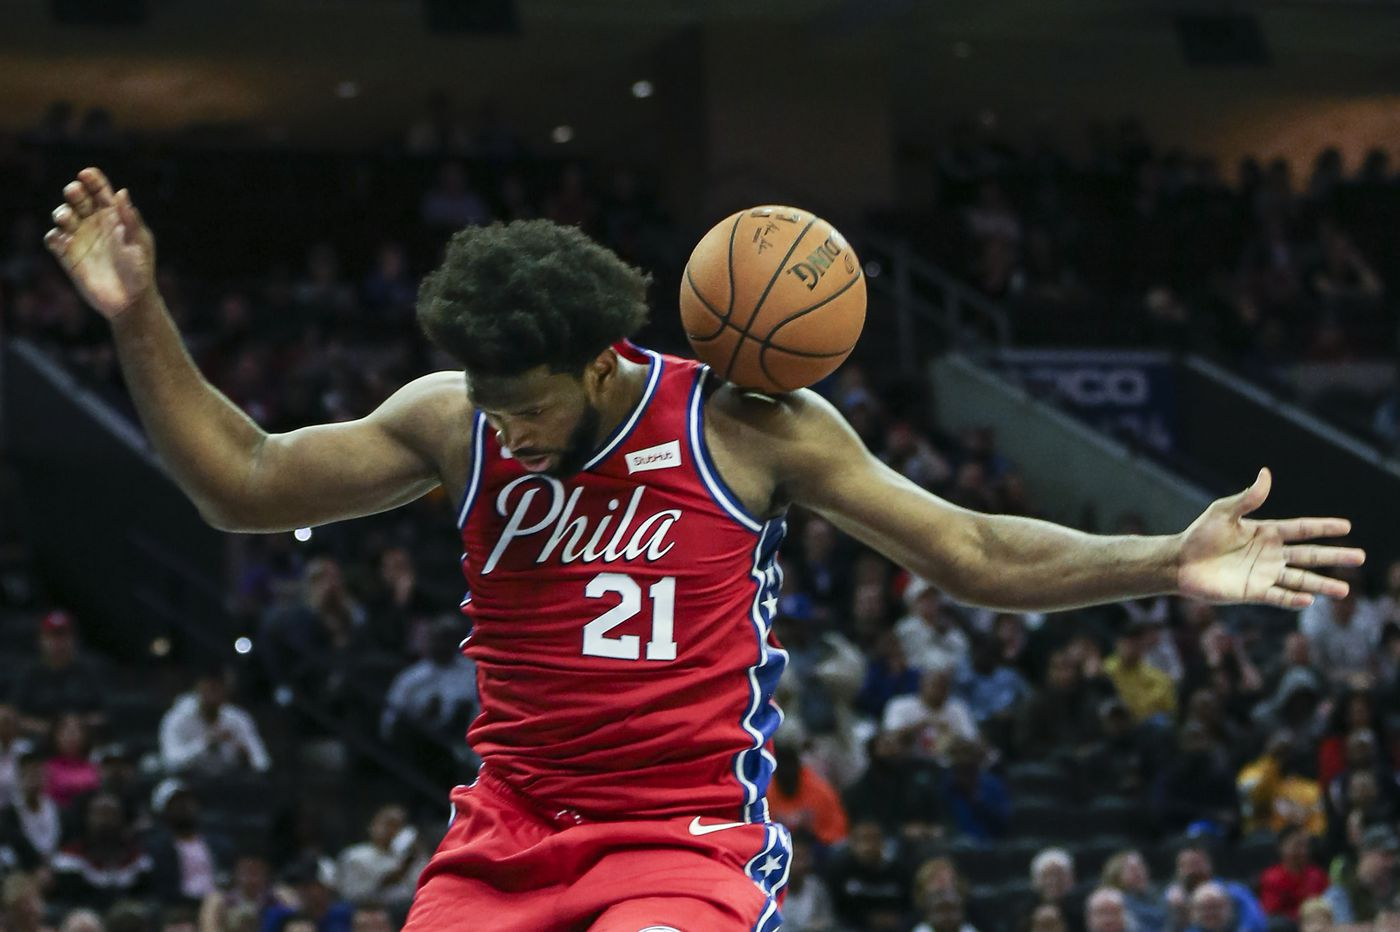 Instant analysis: Three-point drama from Ben Simmons, disruption from Matisse Thybulle and other things we learned about the Sixers against the Guangzhou Loong-Lions | David Murphy